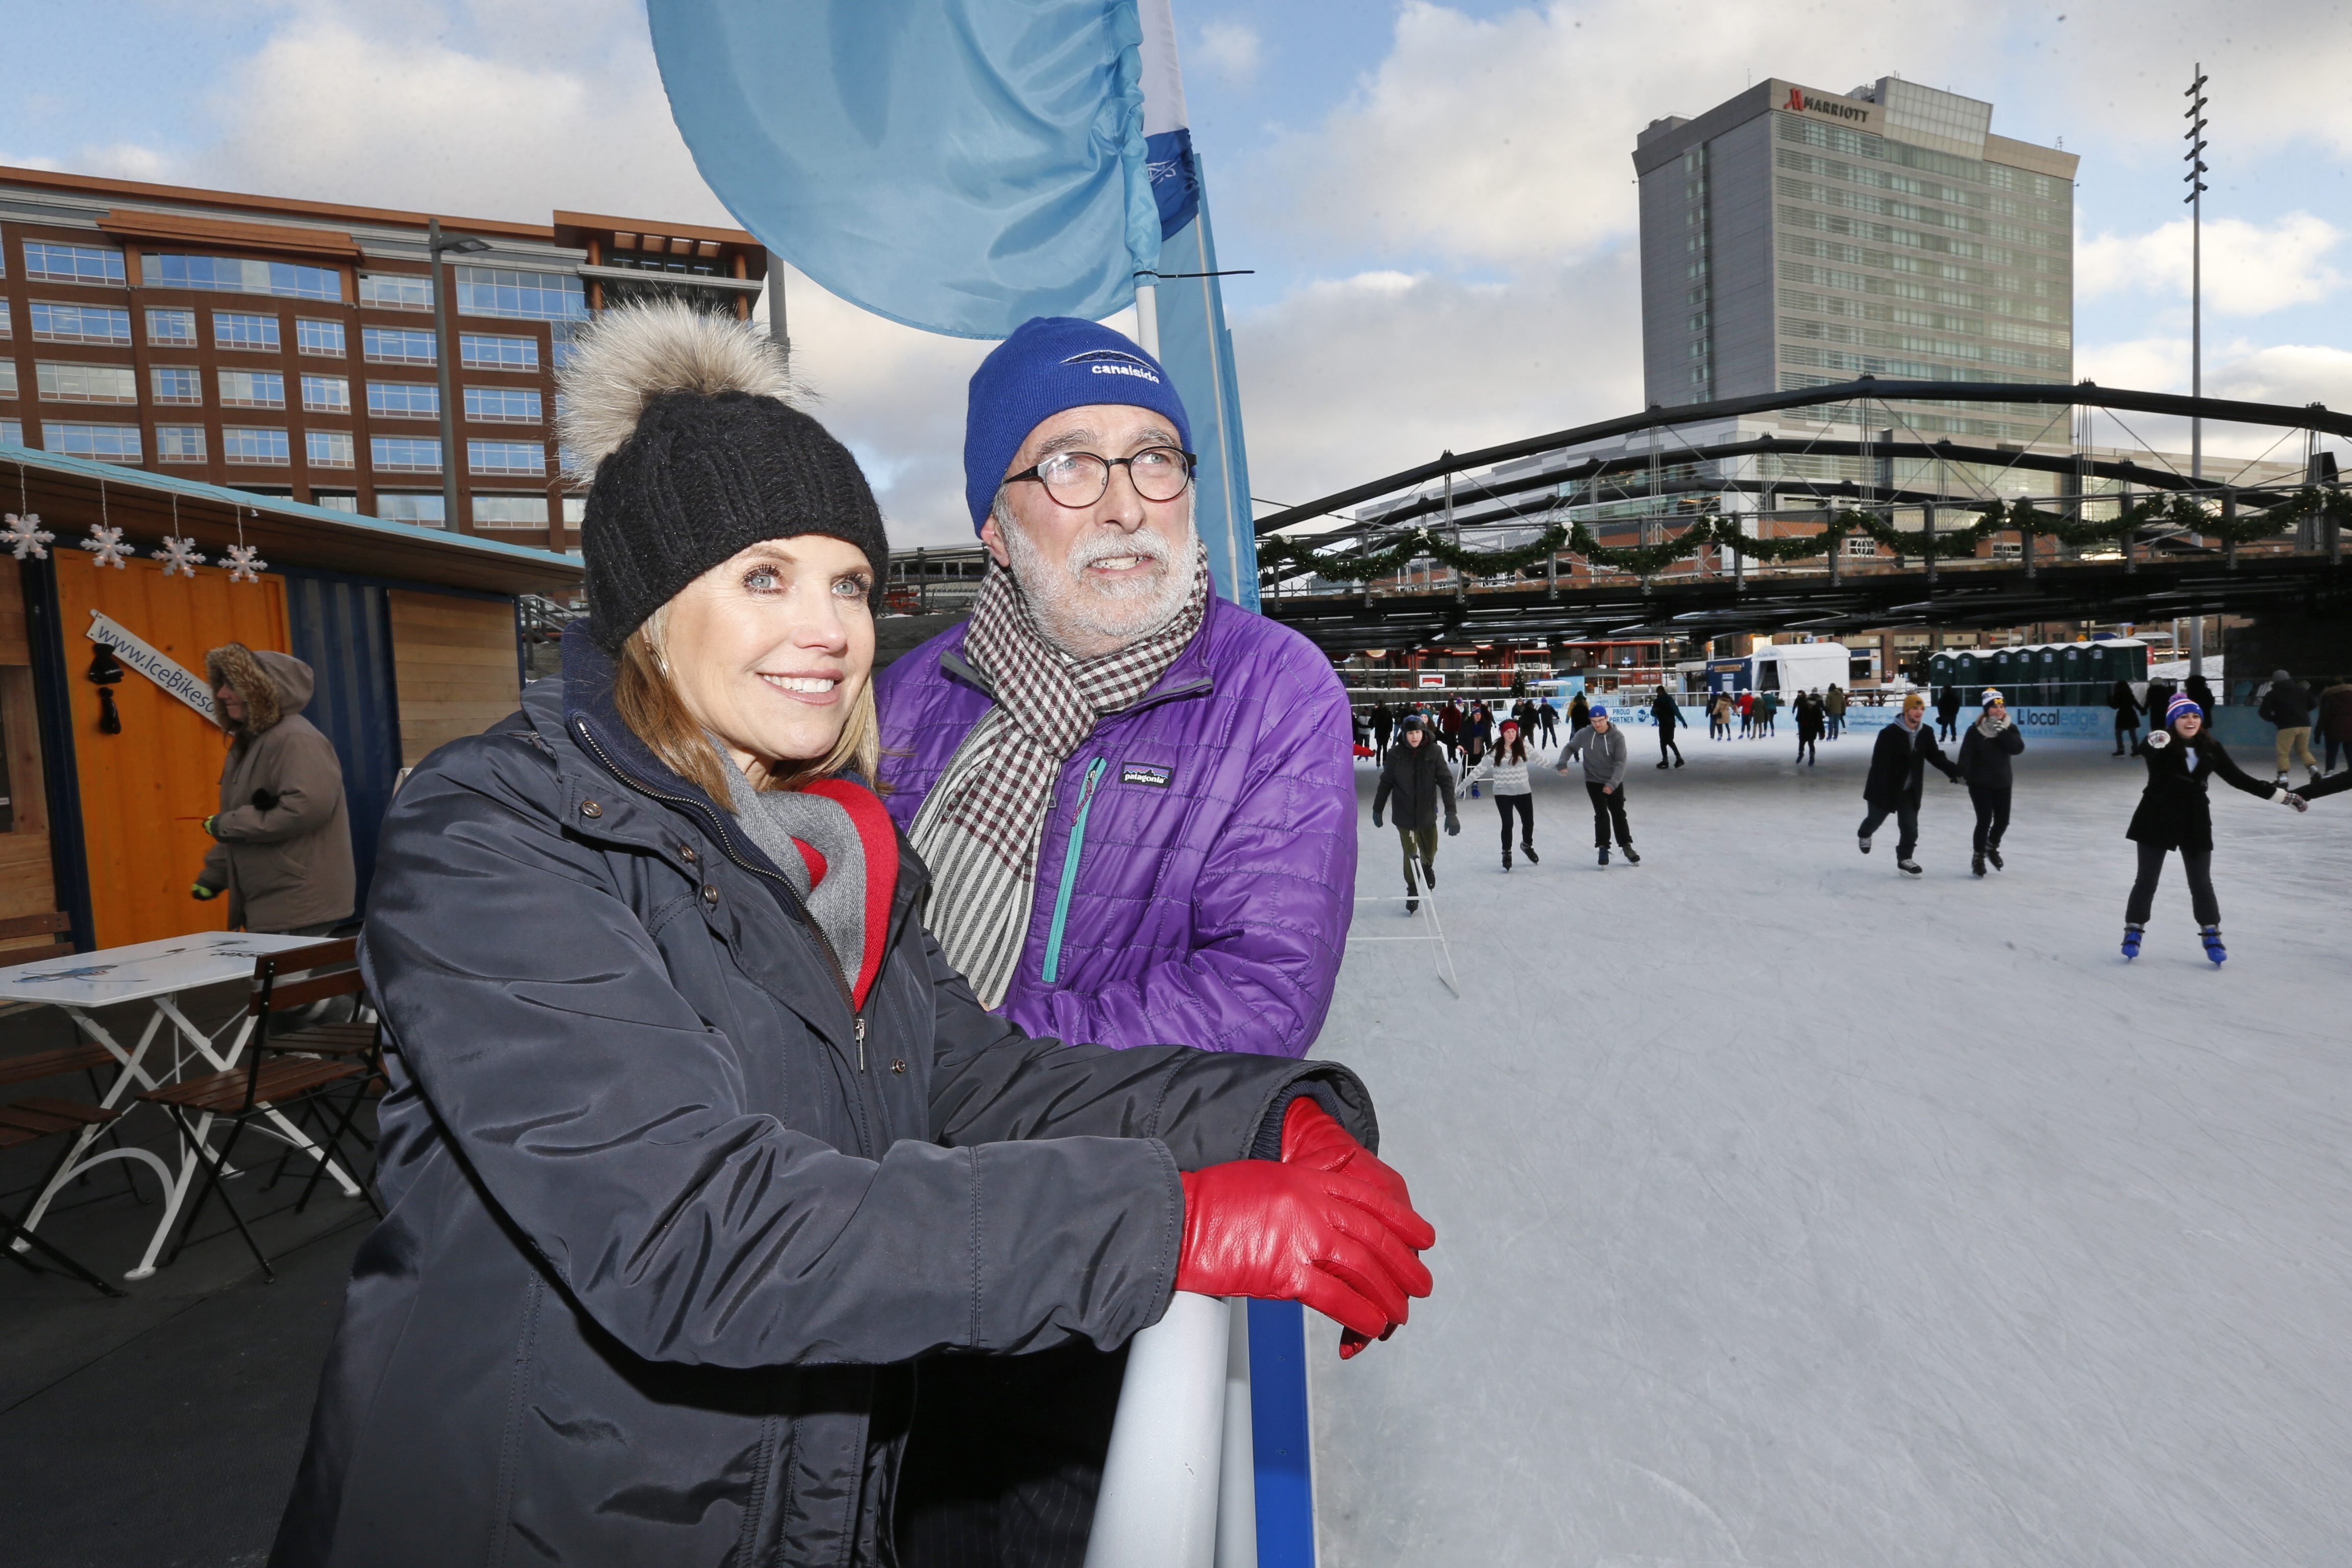 Katie Couric  got a tour of the rink from Robert Gioia, chairman of ECHDC with her new Buffalo hat at Canalside in Buffalo on Tuesday, Jan. 5, 2016.  (Robert Kirkham/Buffalo News)